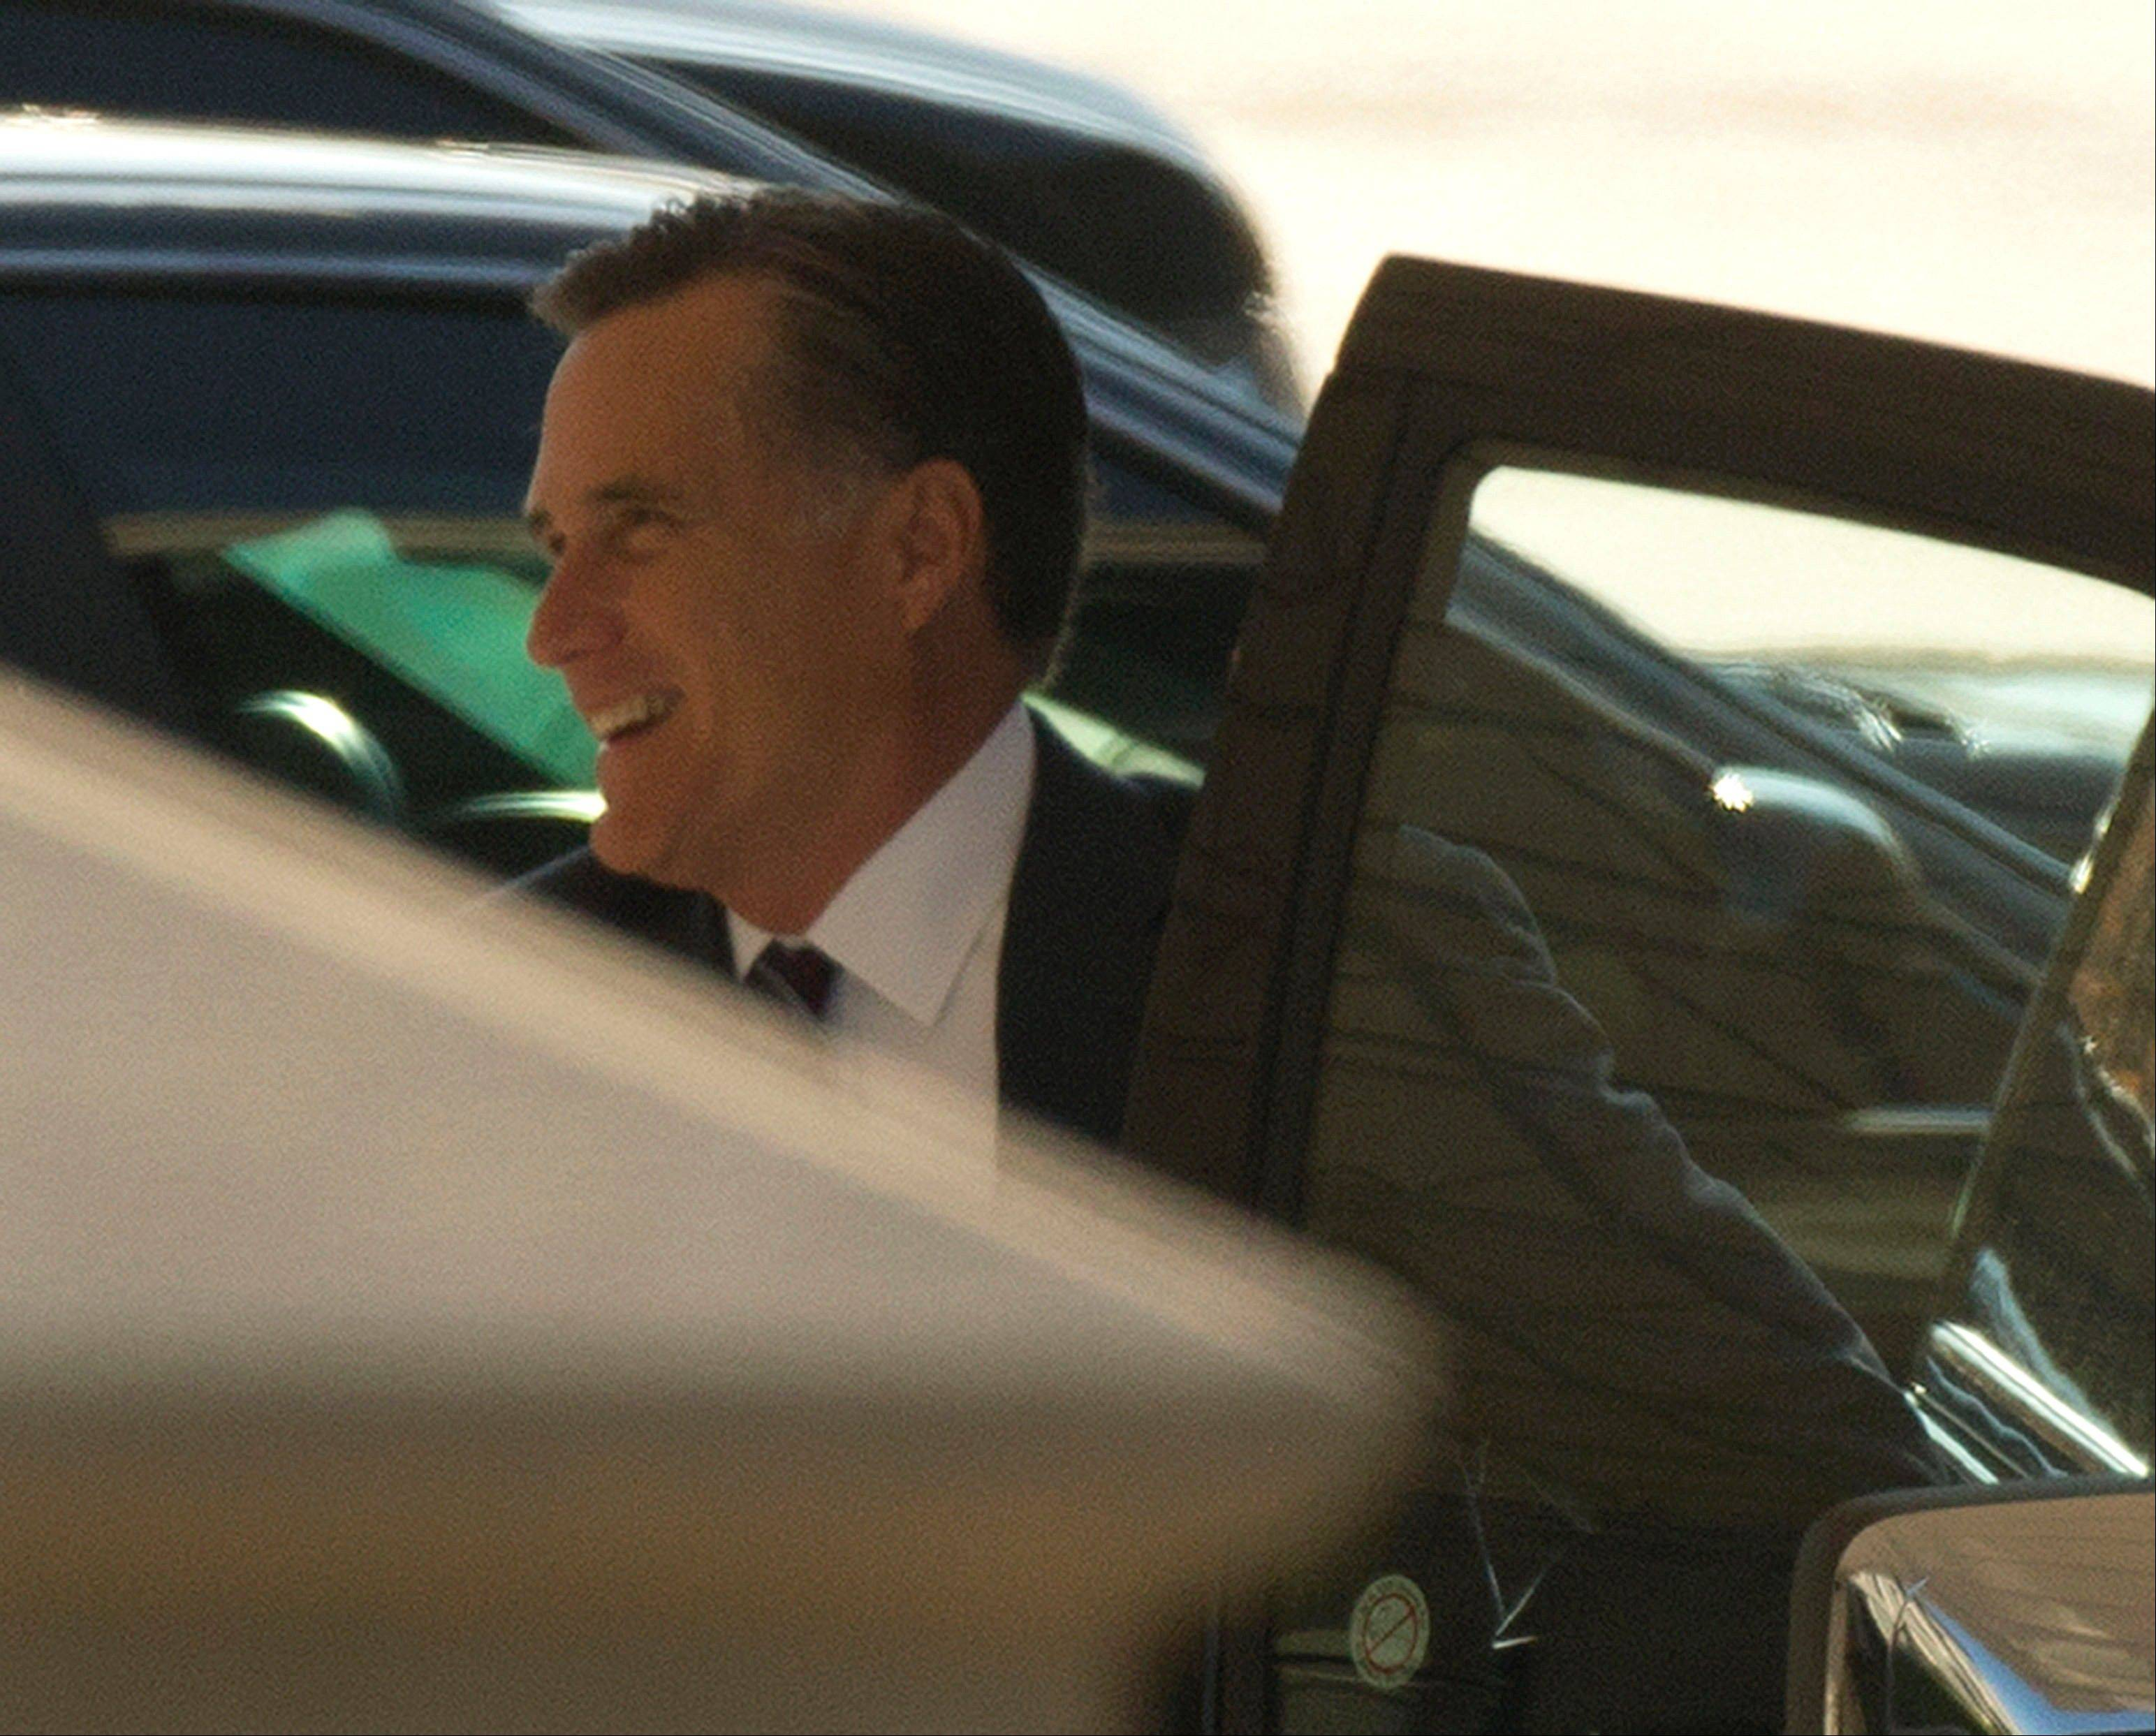 Former Republican presidential candidate Mitt Romney arrives at the White House in Washington, Thursday for his luncheon with President Barack Obama.